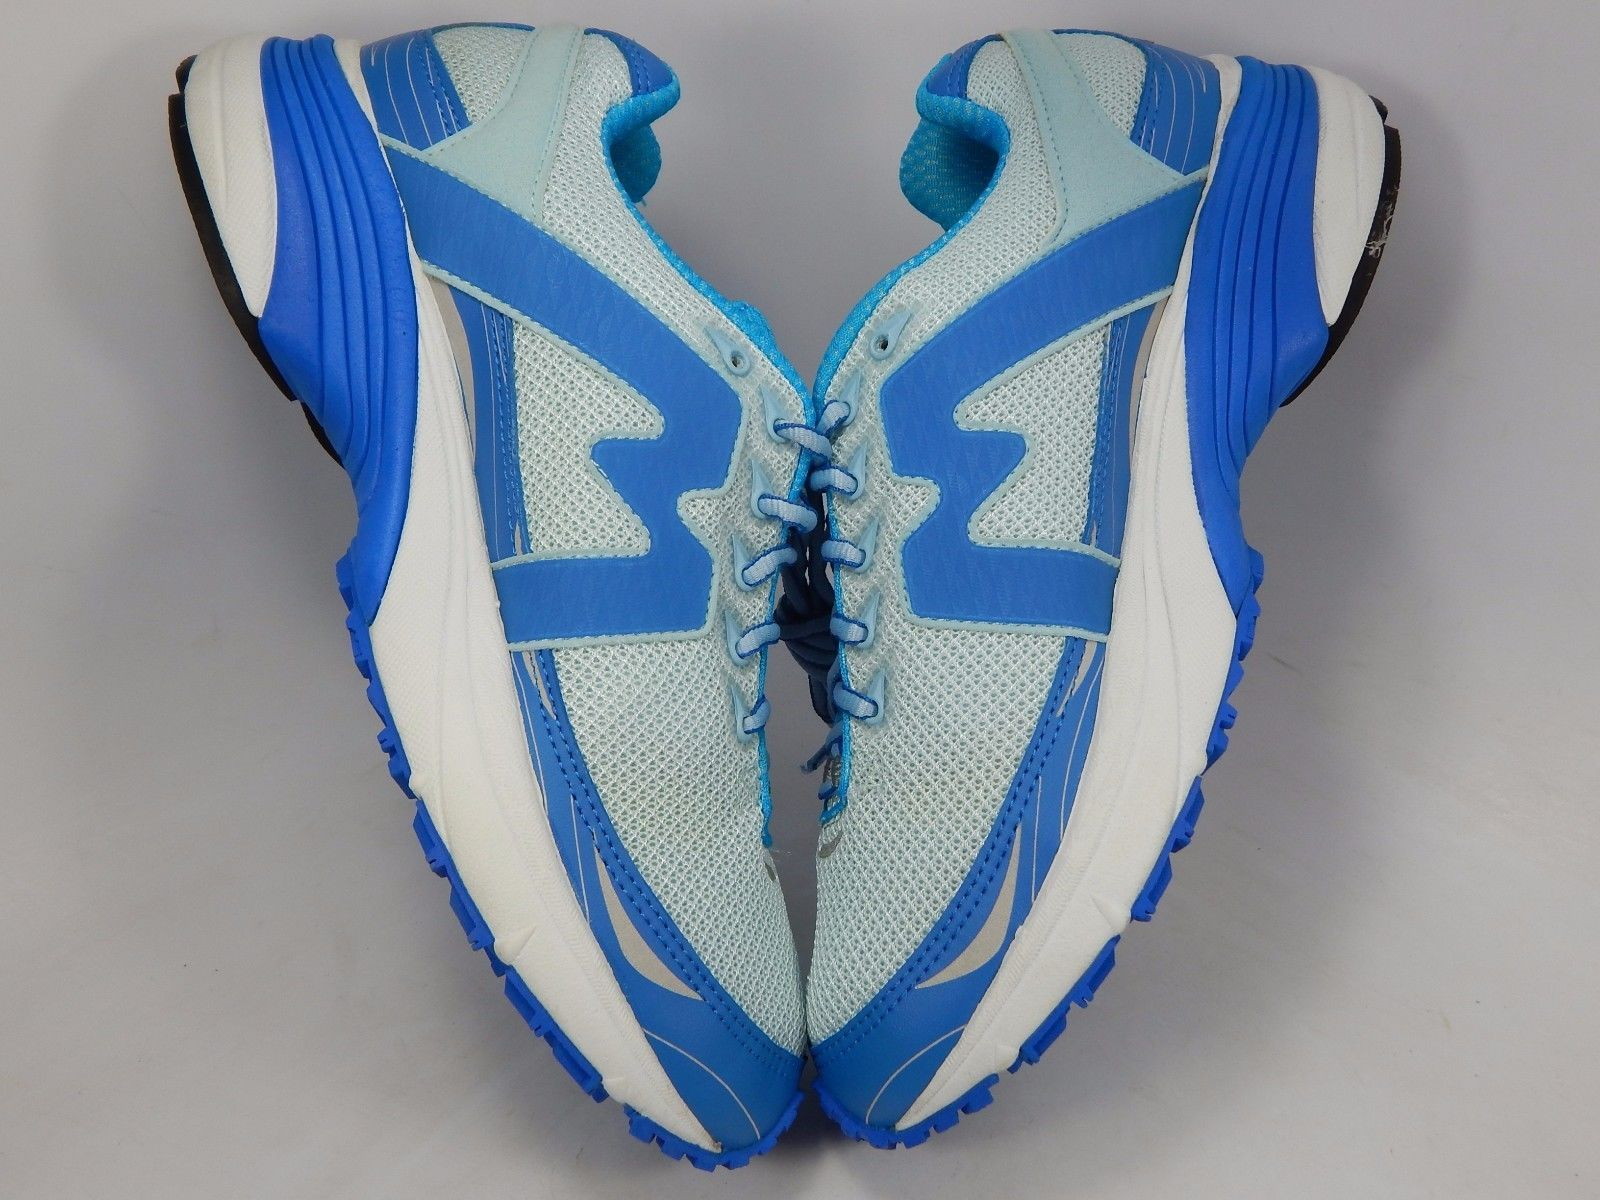 Karhu Steady Ride Fulcrum Women's Running Shoes Size US 10.5 EU 42 blue